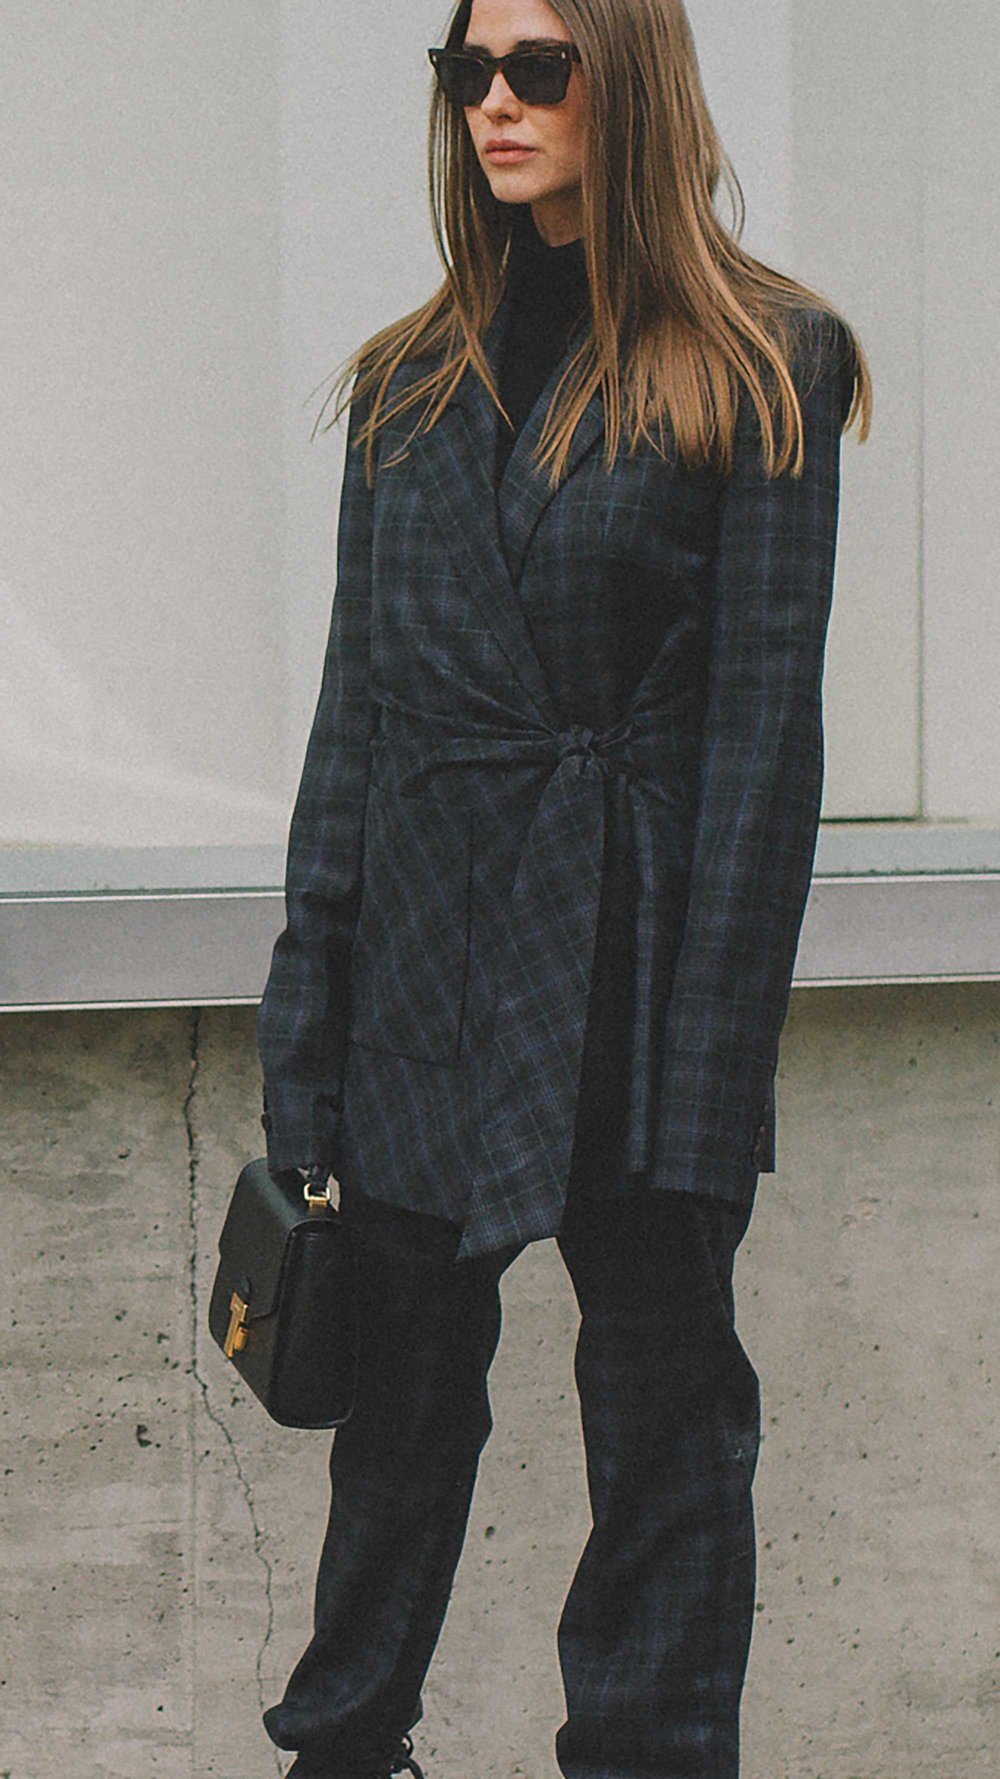 Best outfits of New York Fashion Week street style day four NYFW FW19 - 52.jpg